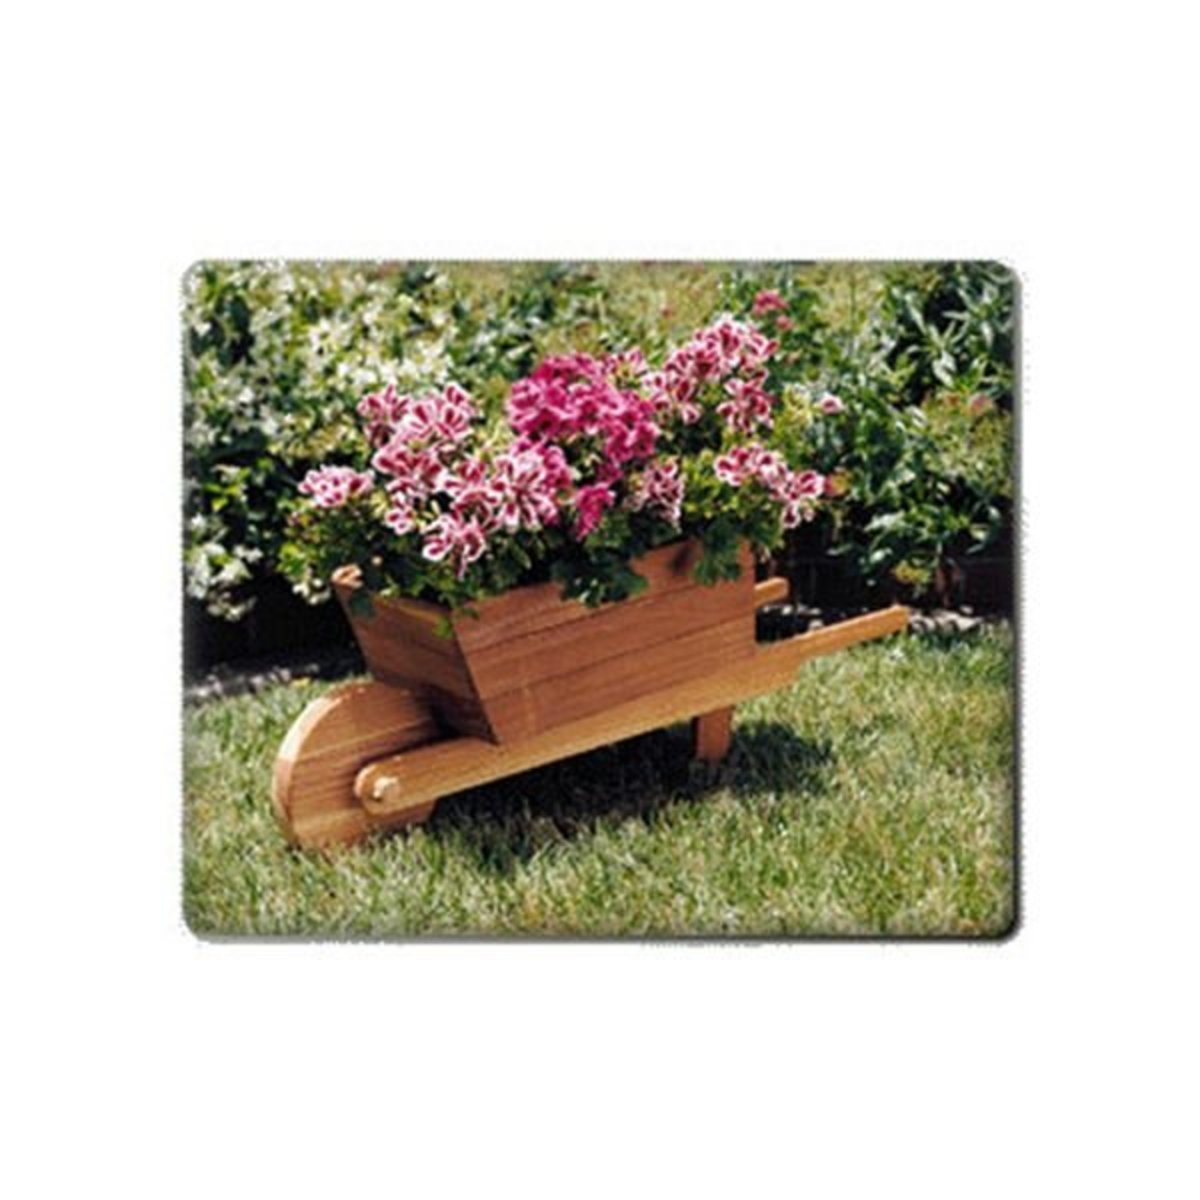 U Bild Woodworking Project Paper Plan To Build Wheelbarrow Planter